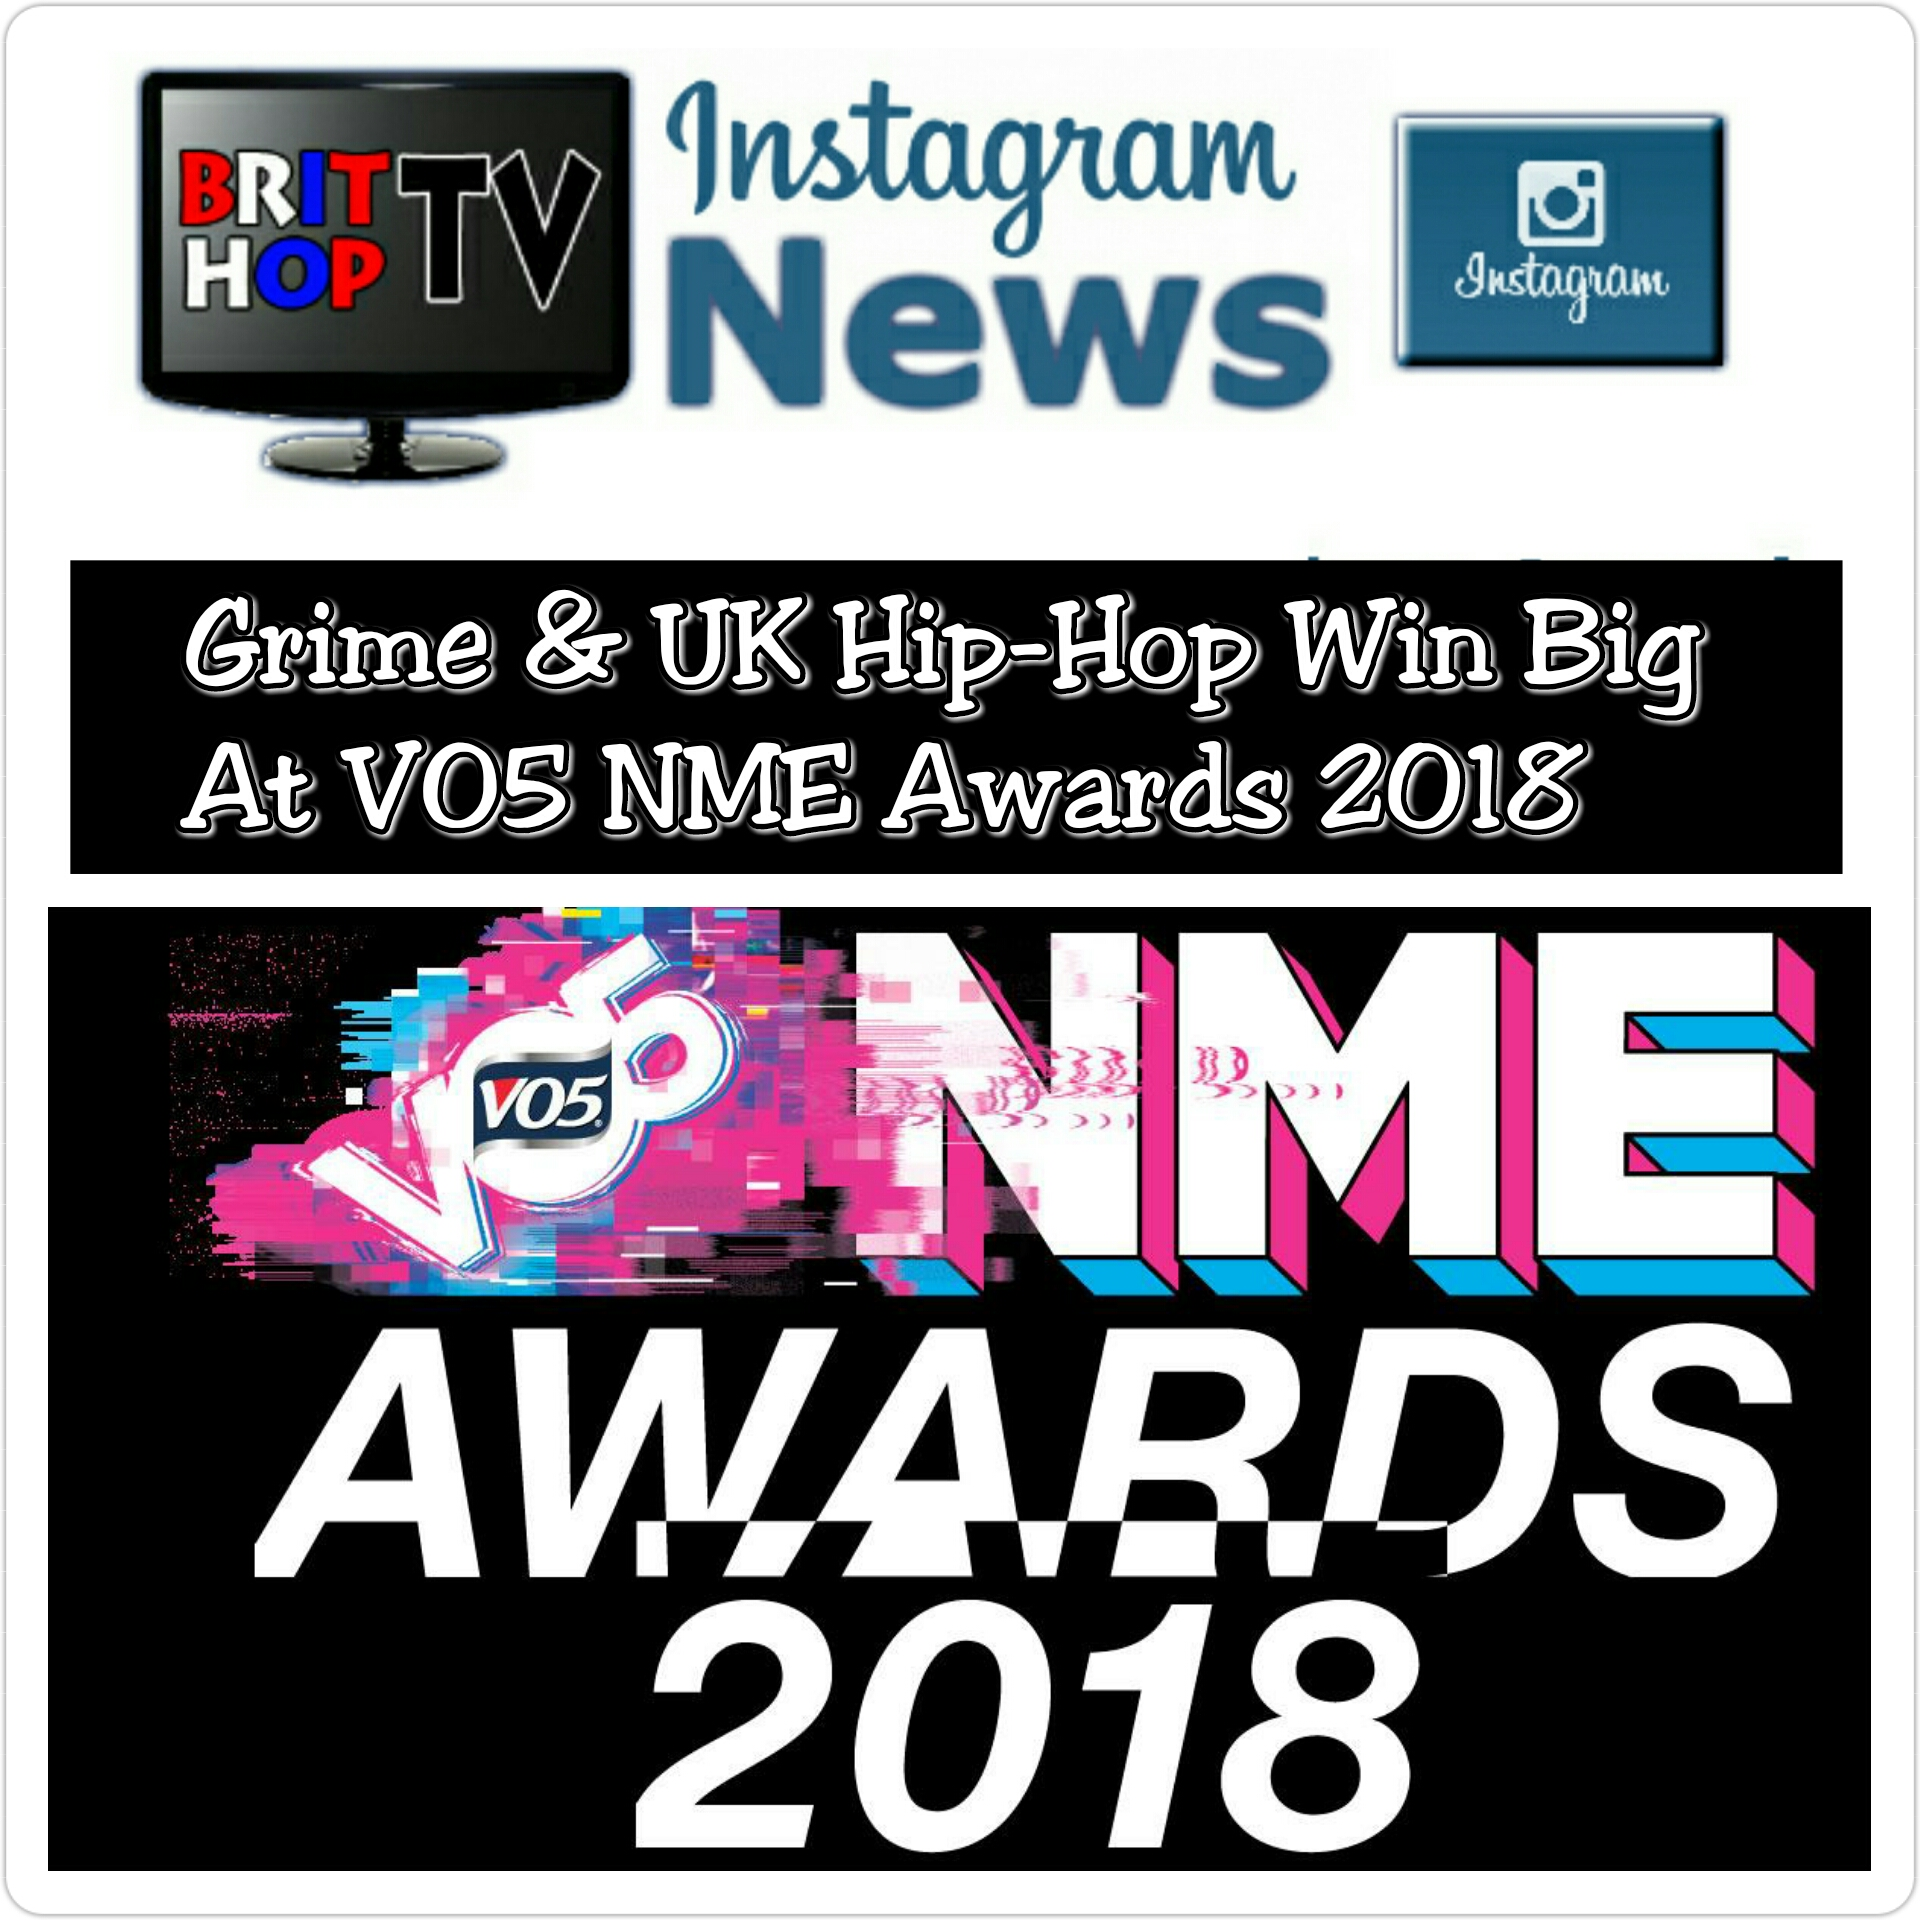 [News] Grime & UK Hip-Hop Win Big At VO5 NME Awards 2018 | #Grime #UKHipHop #MusicNews